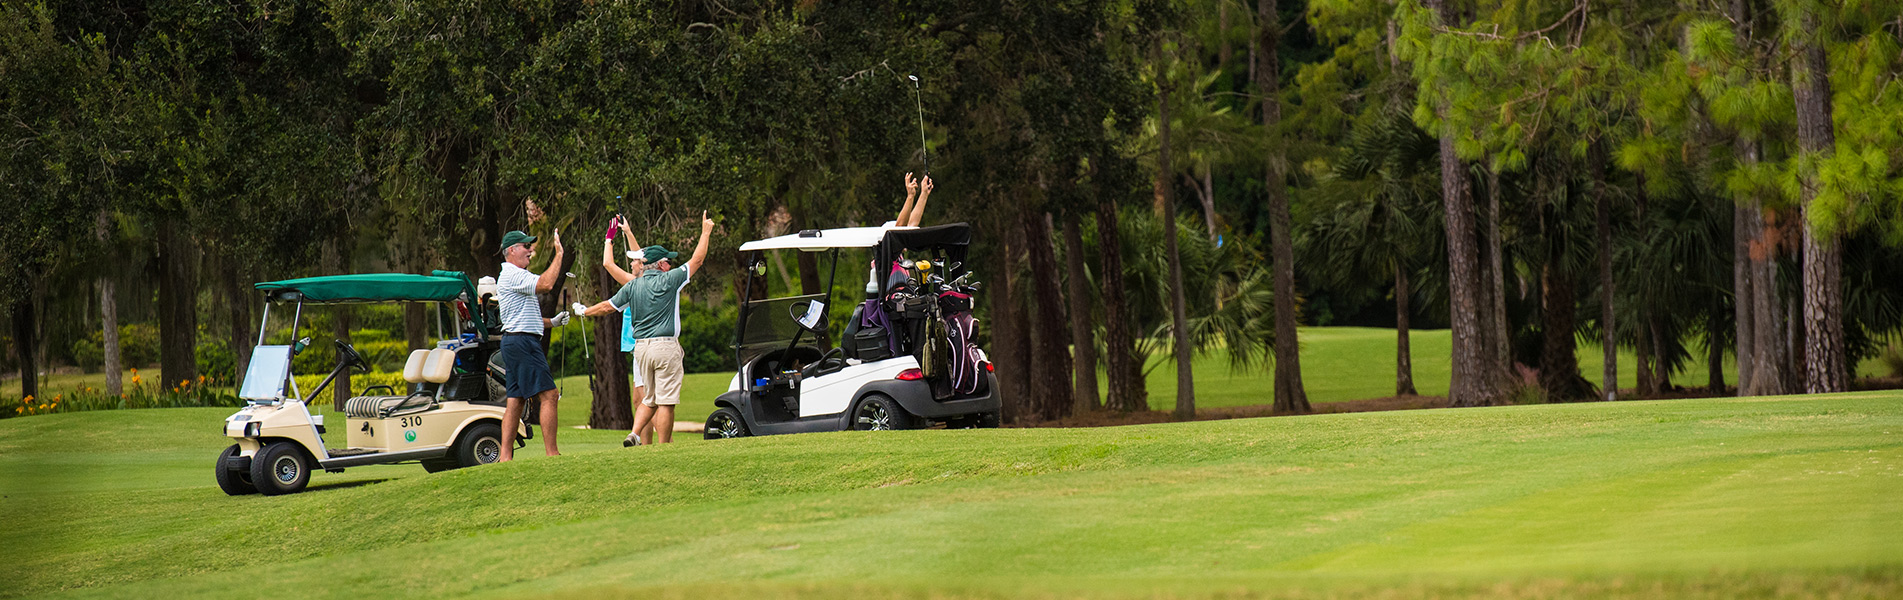 FGCU Founder's Cup Golf Tournament